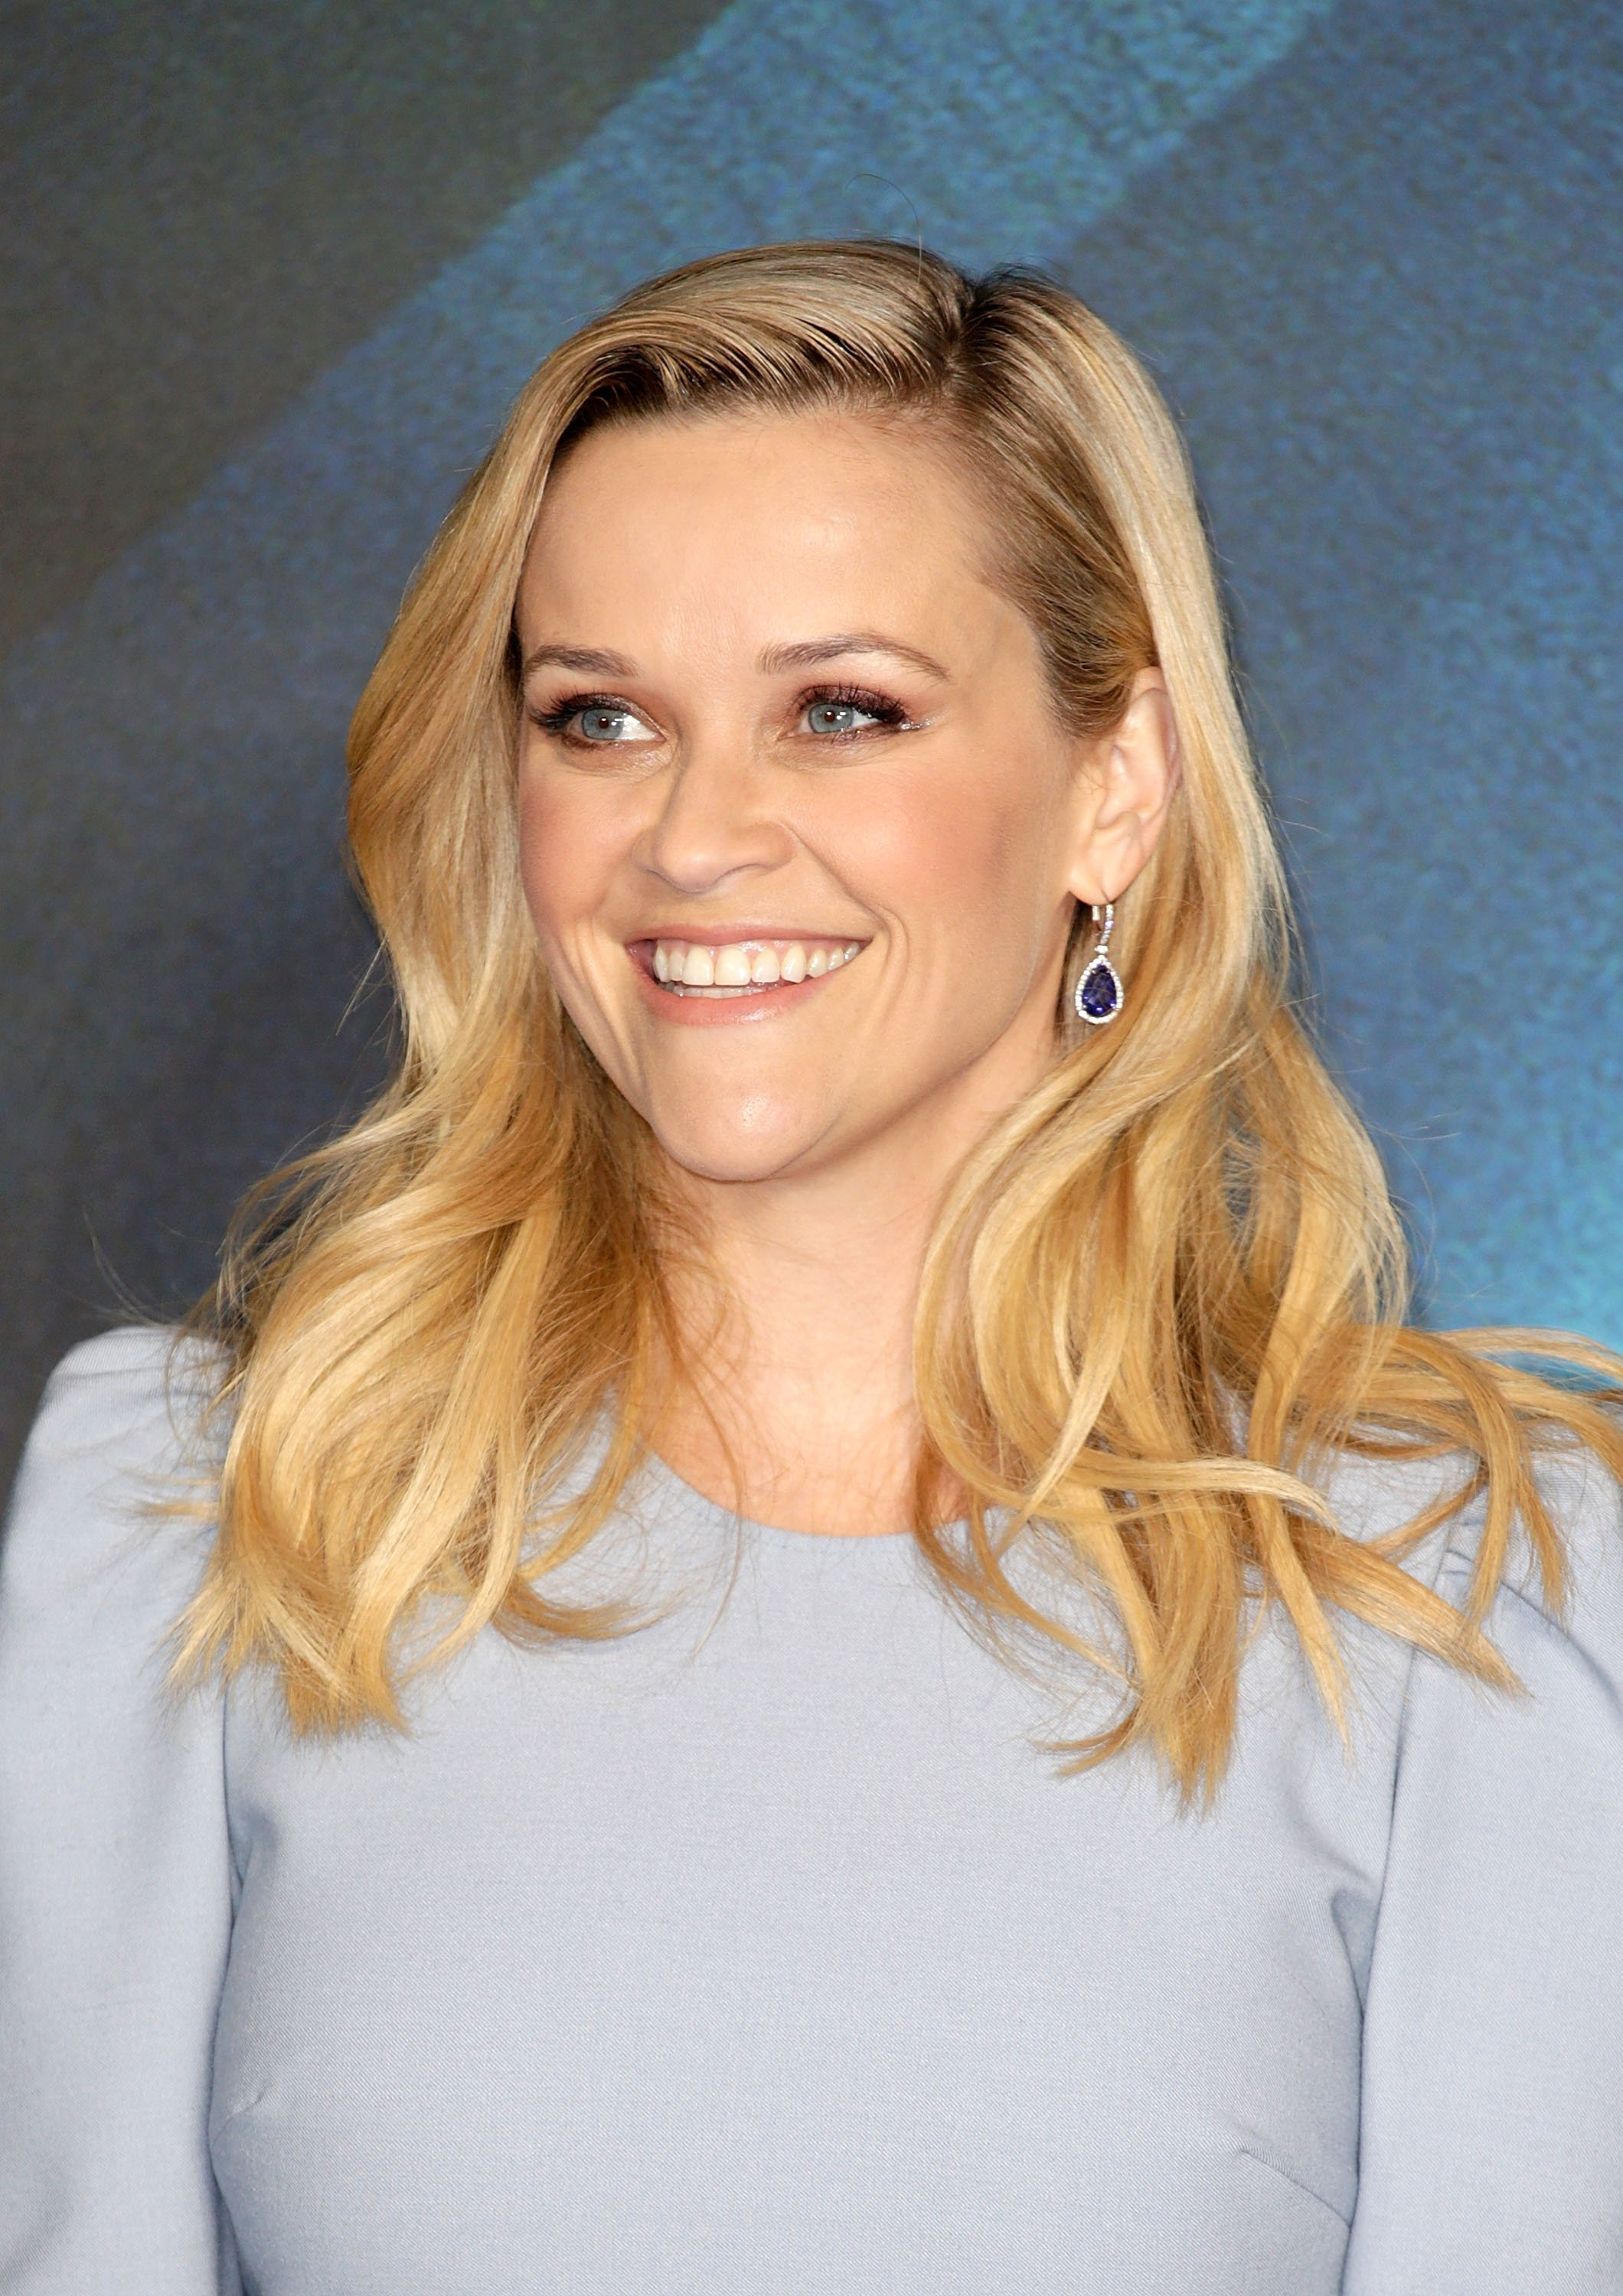 """Reese Witherspoon attends the premiere of """"A Wrinkle In Time"""" in London, England on March 13, 2018 